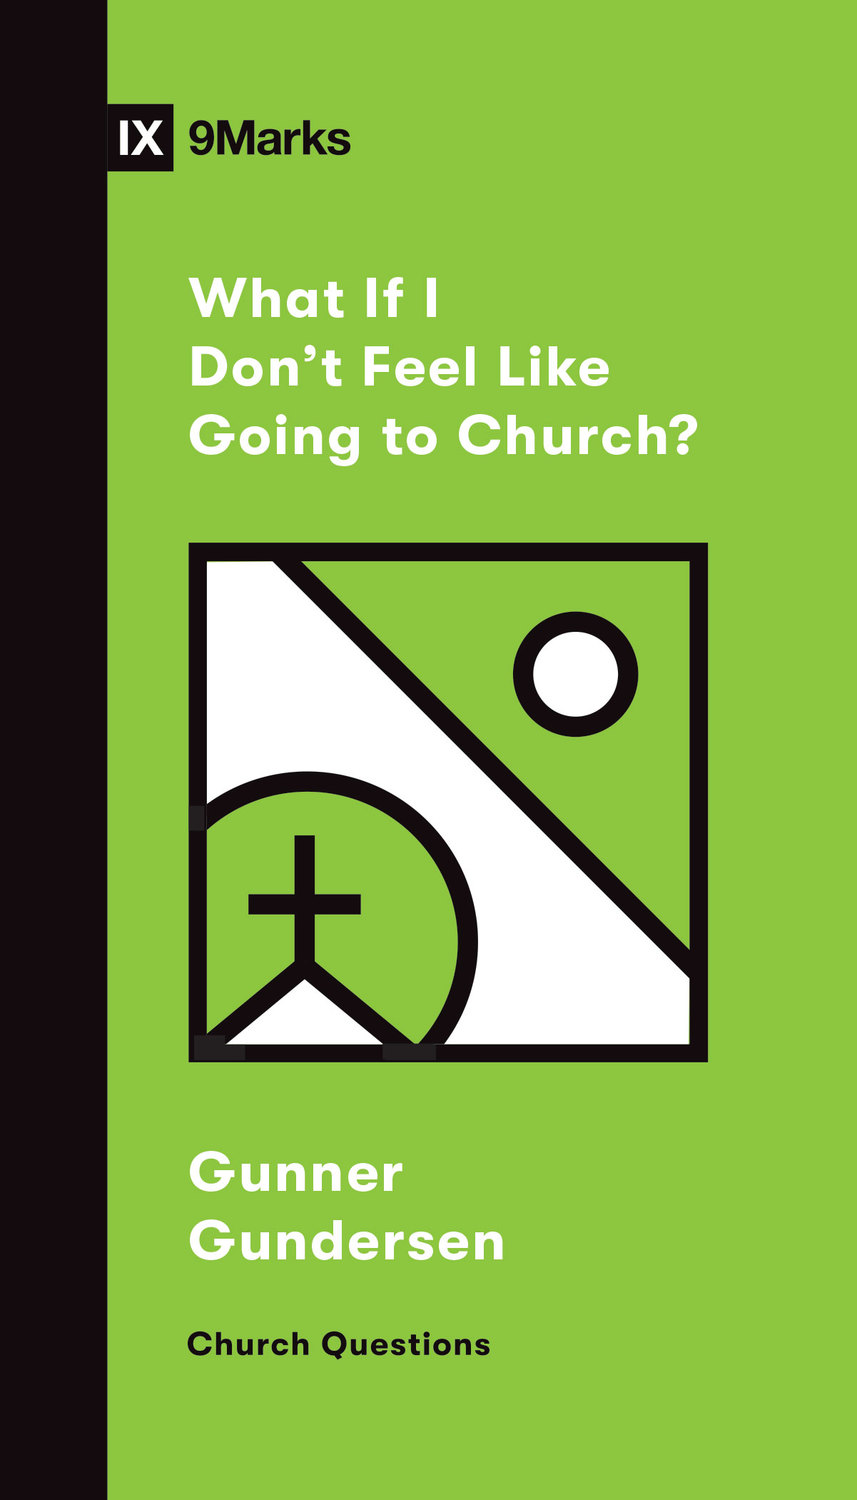 What If I Don't Feel Like Going to Church?